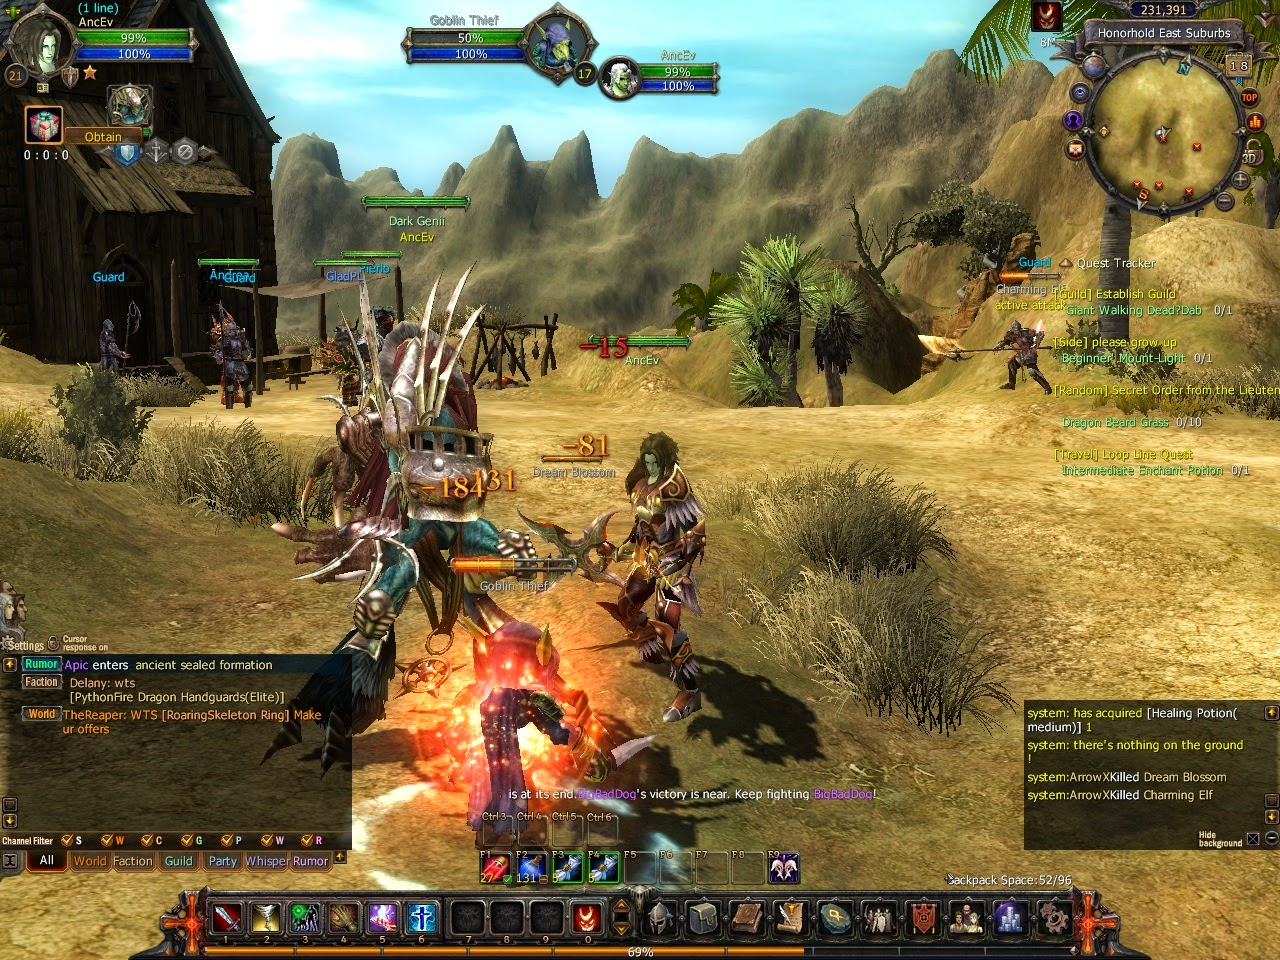 MMORPG Dodging and Evading